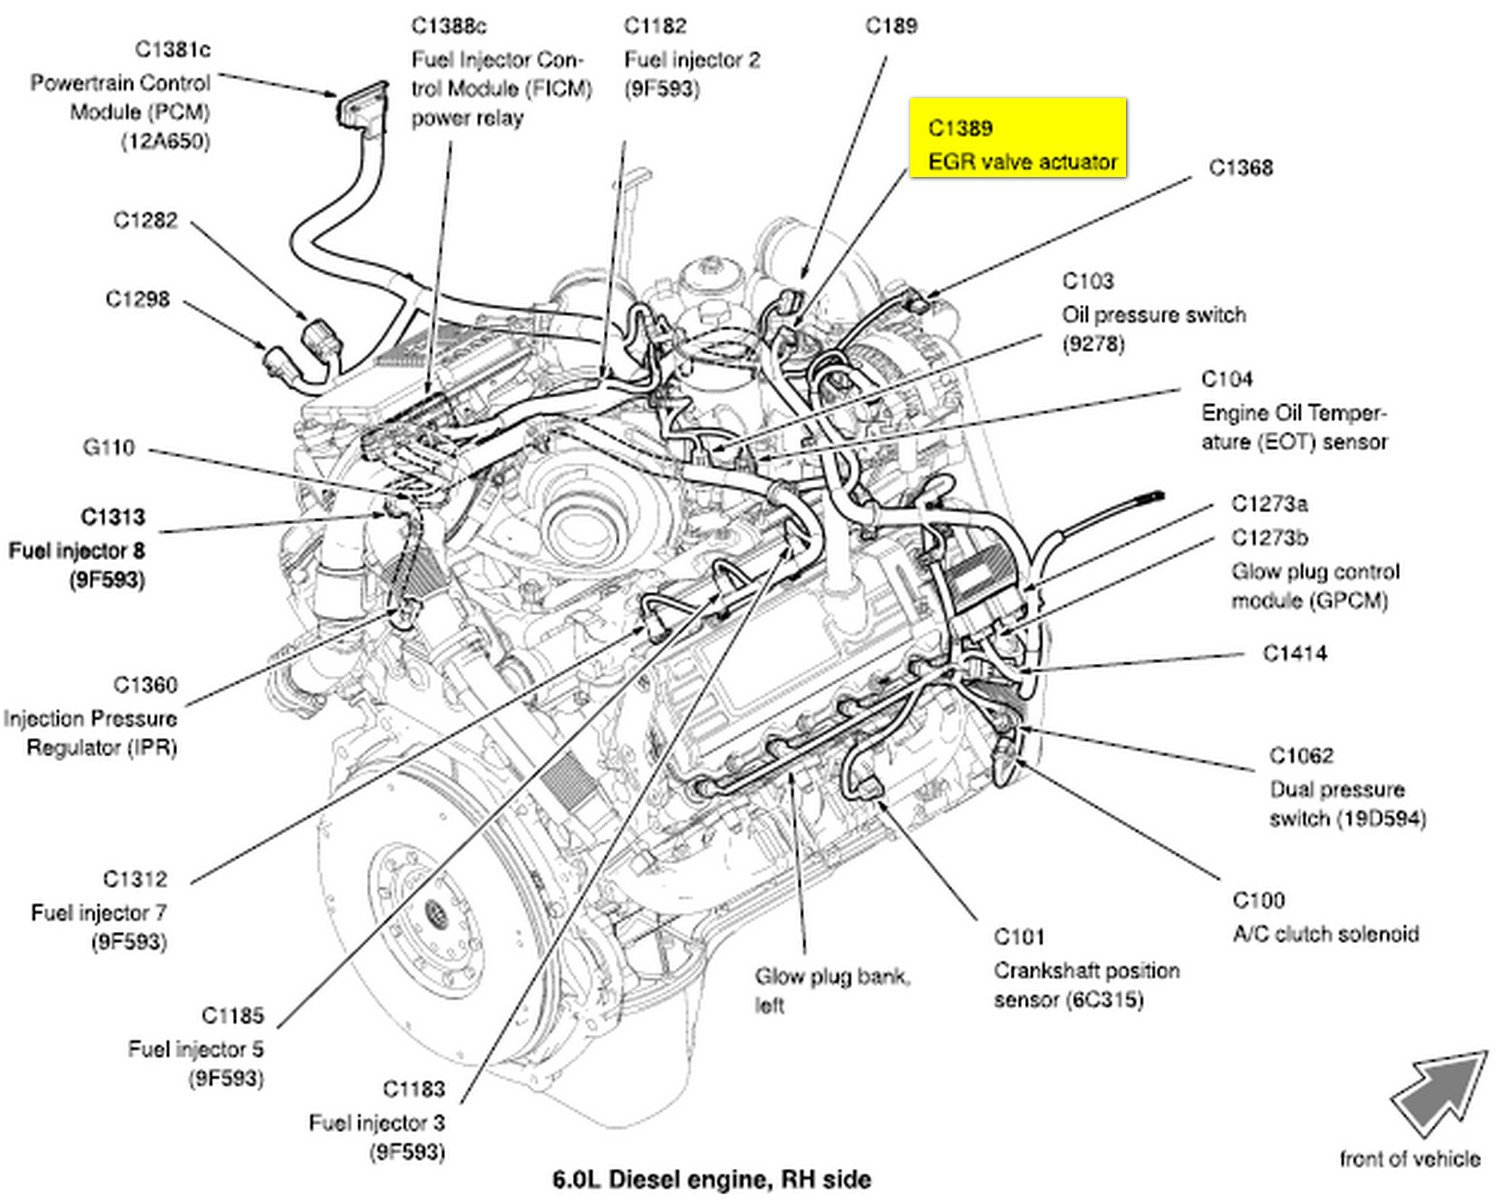 97 Ford F 250 5 8 Engine Diagram besides A Diagram For 1995 Gmc Jimmy Motor likewise 2006 Ford Focus Engine Coolant Sensor Replacement moreover 4eewf Ford F 250 Super Duty Fx4 2004 F250 V10 Oil Pressure Gauge also Ford F150 F250 How To Replace Serpentine Belt 359906. on ford triton v10 engine belt diagram